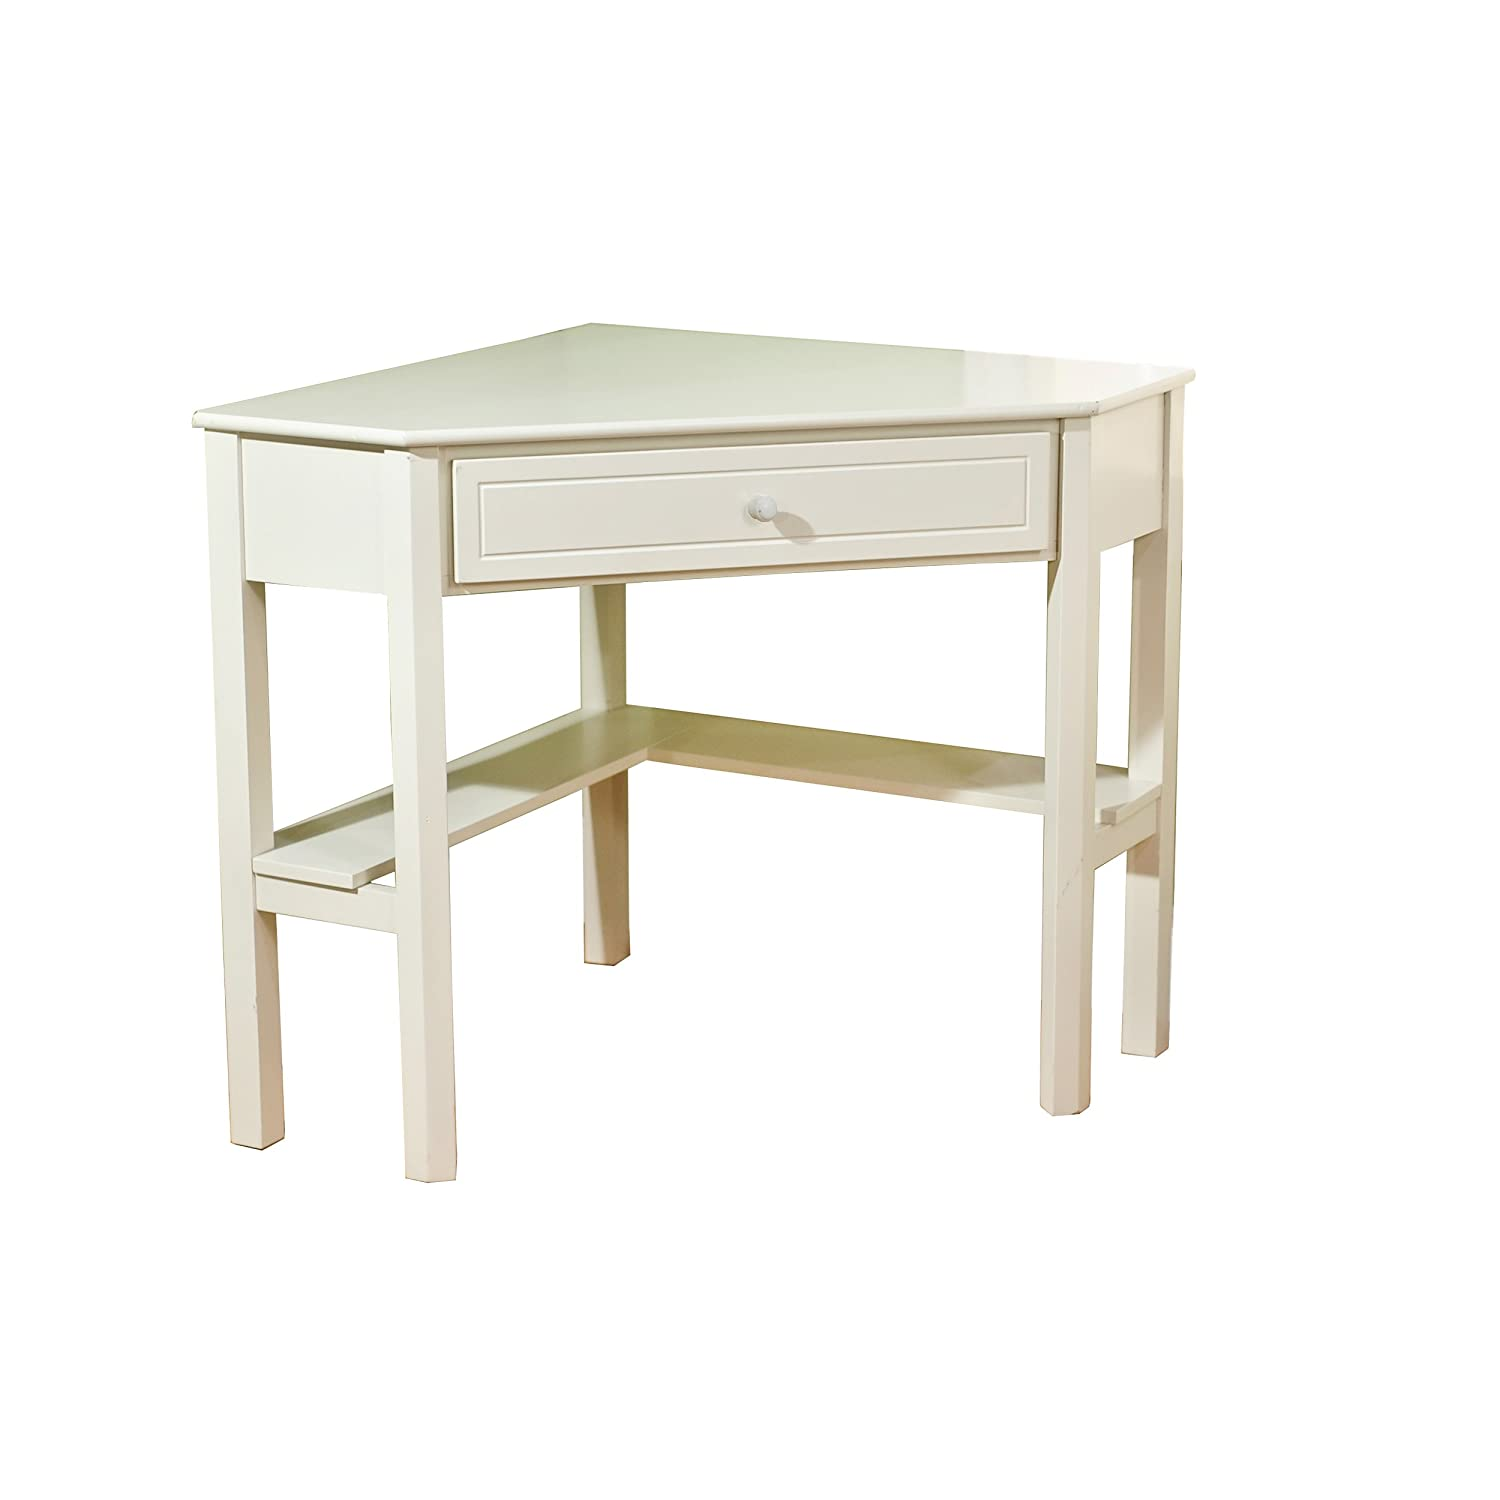 Amazon.com: Target Marketing Systems Wood Corner Desk with One Drawer and  One Storage Shelf, Antique White Finish: Kitchen & Dining